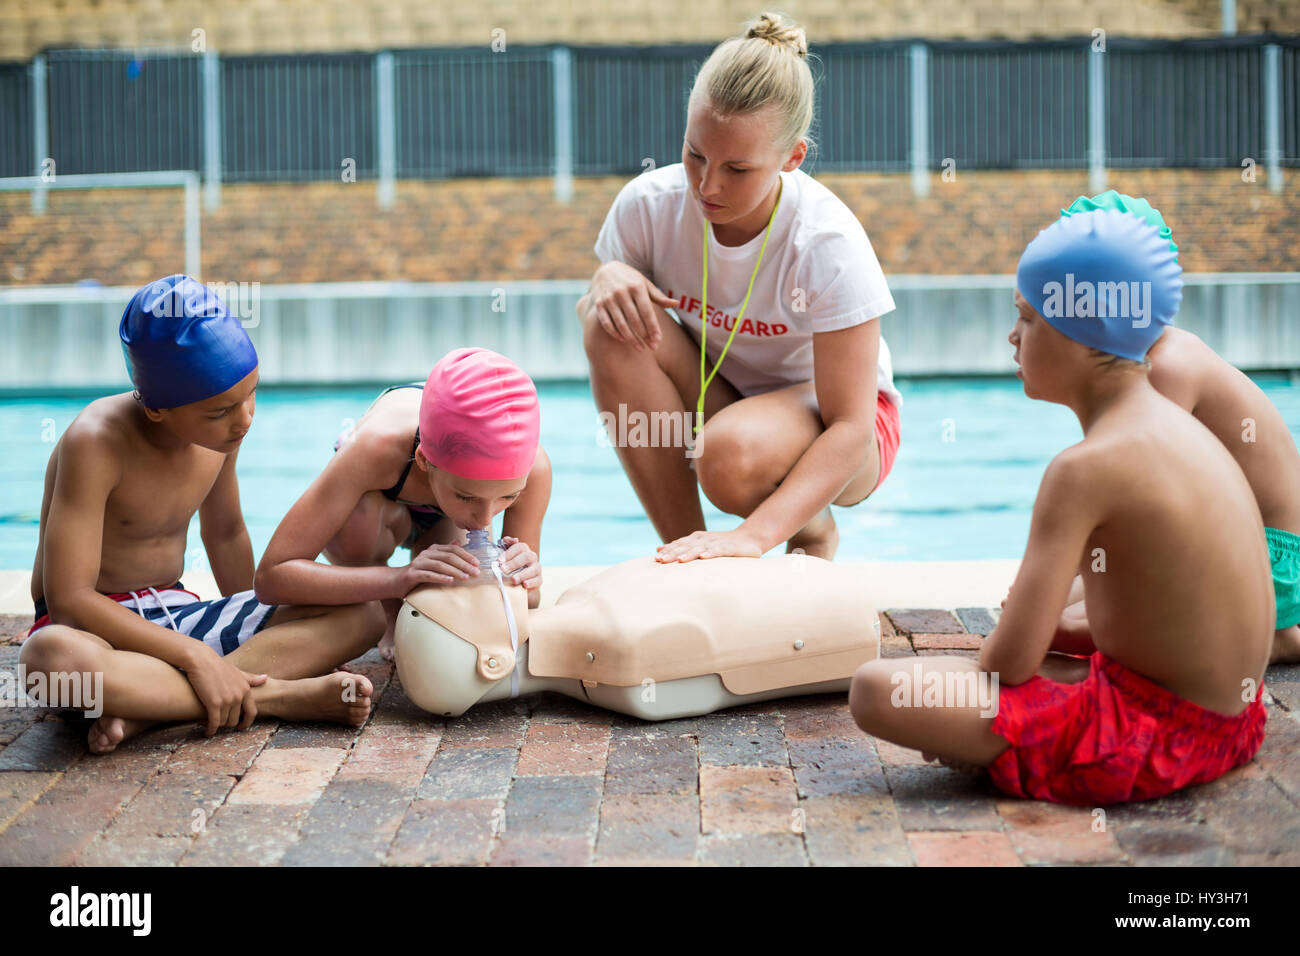 c0588ec951c Female lifeguard helping children during rescue training at poolside -  Stock Image